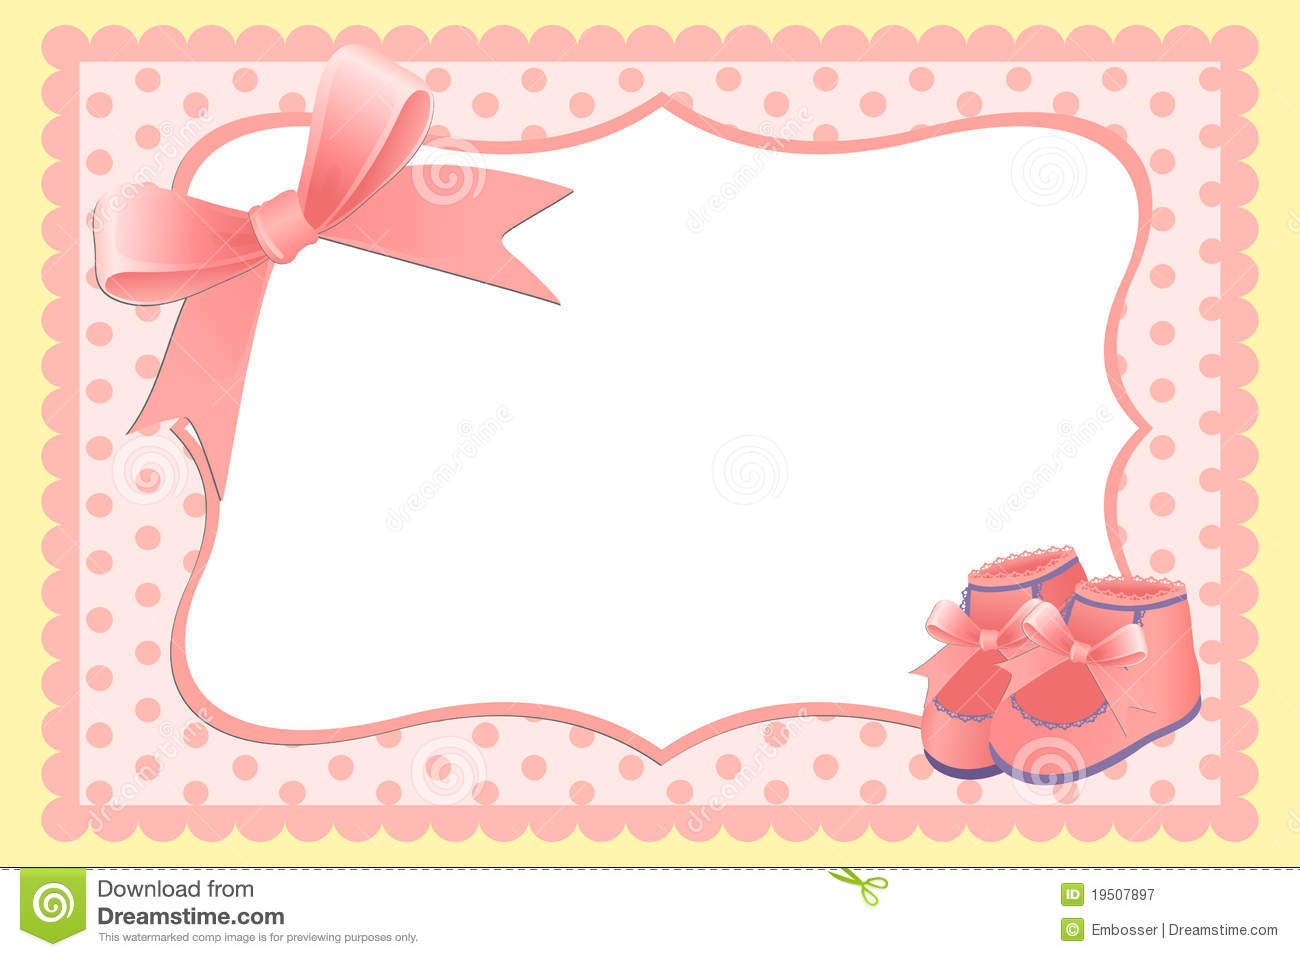 001 Template Ideas Free Printable Baby Cards Templates Cute S Card - Free Printable Baby Cards